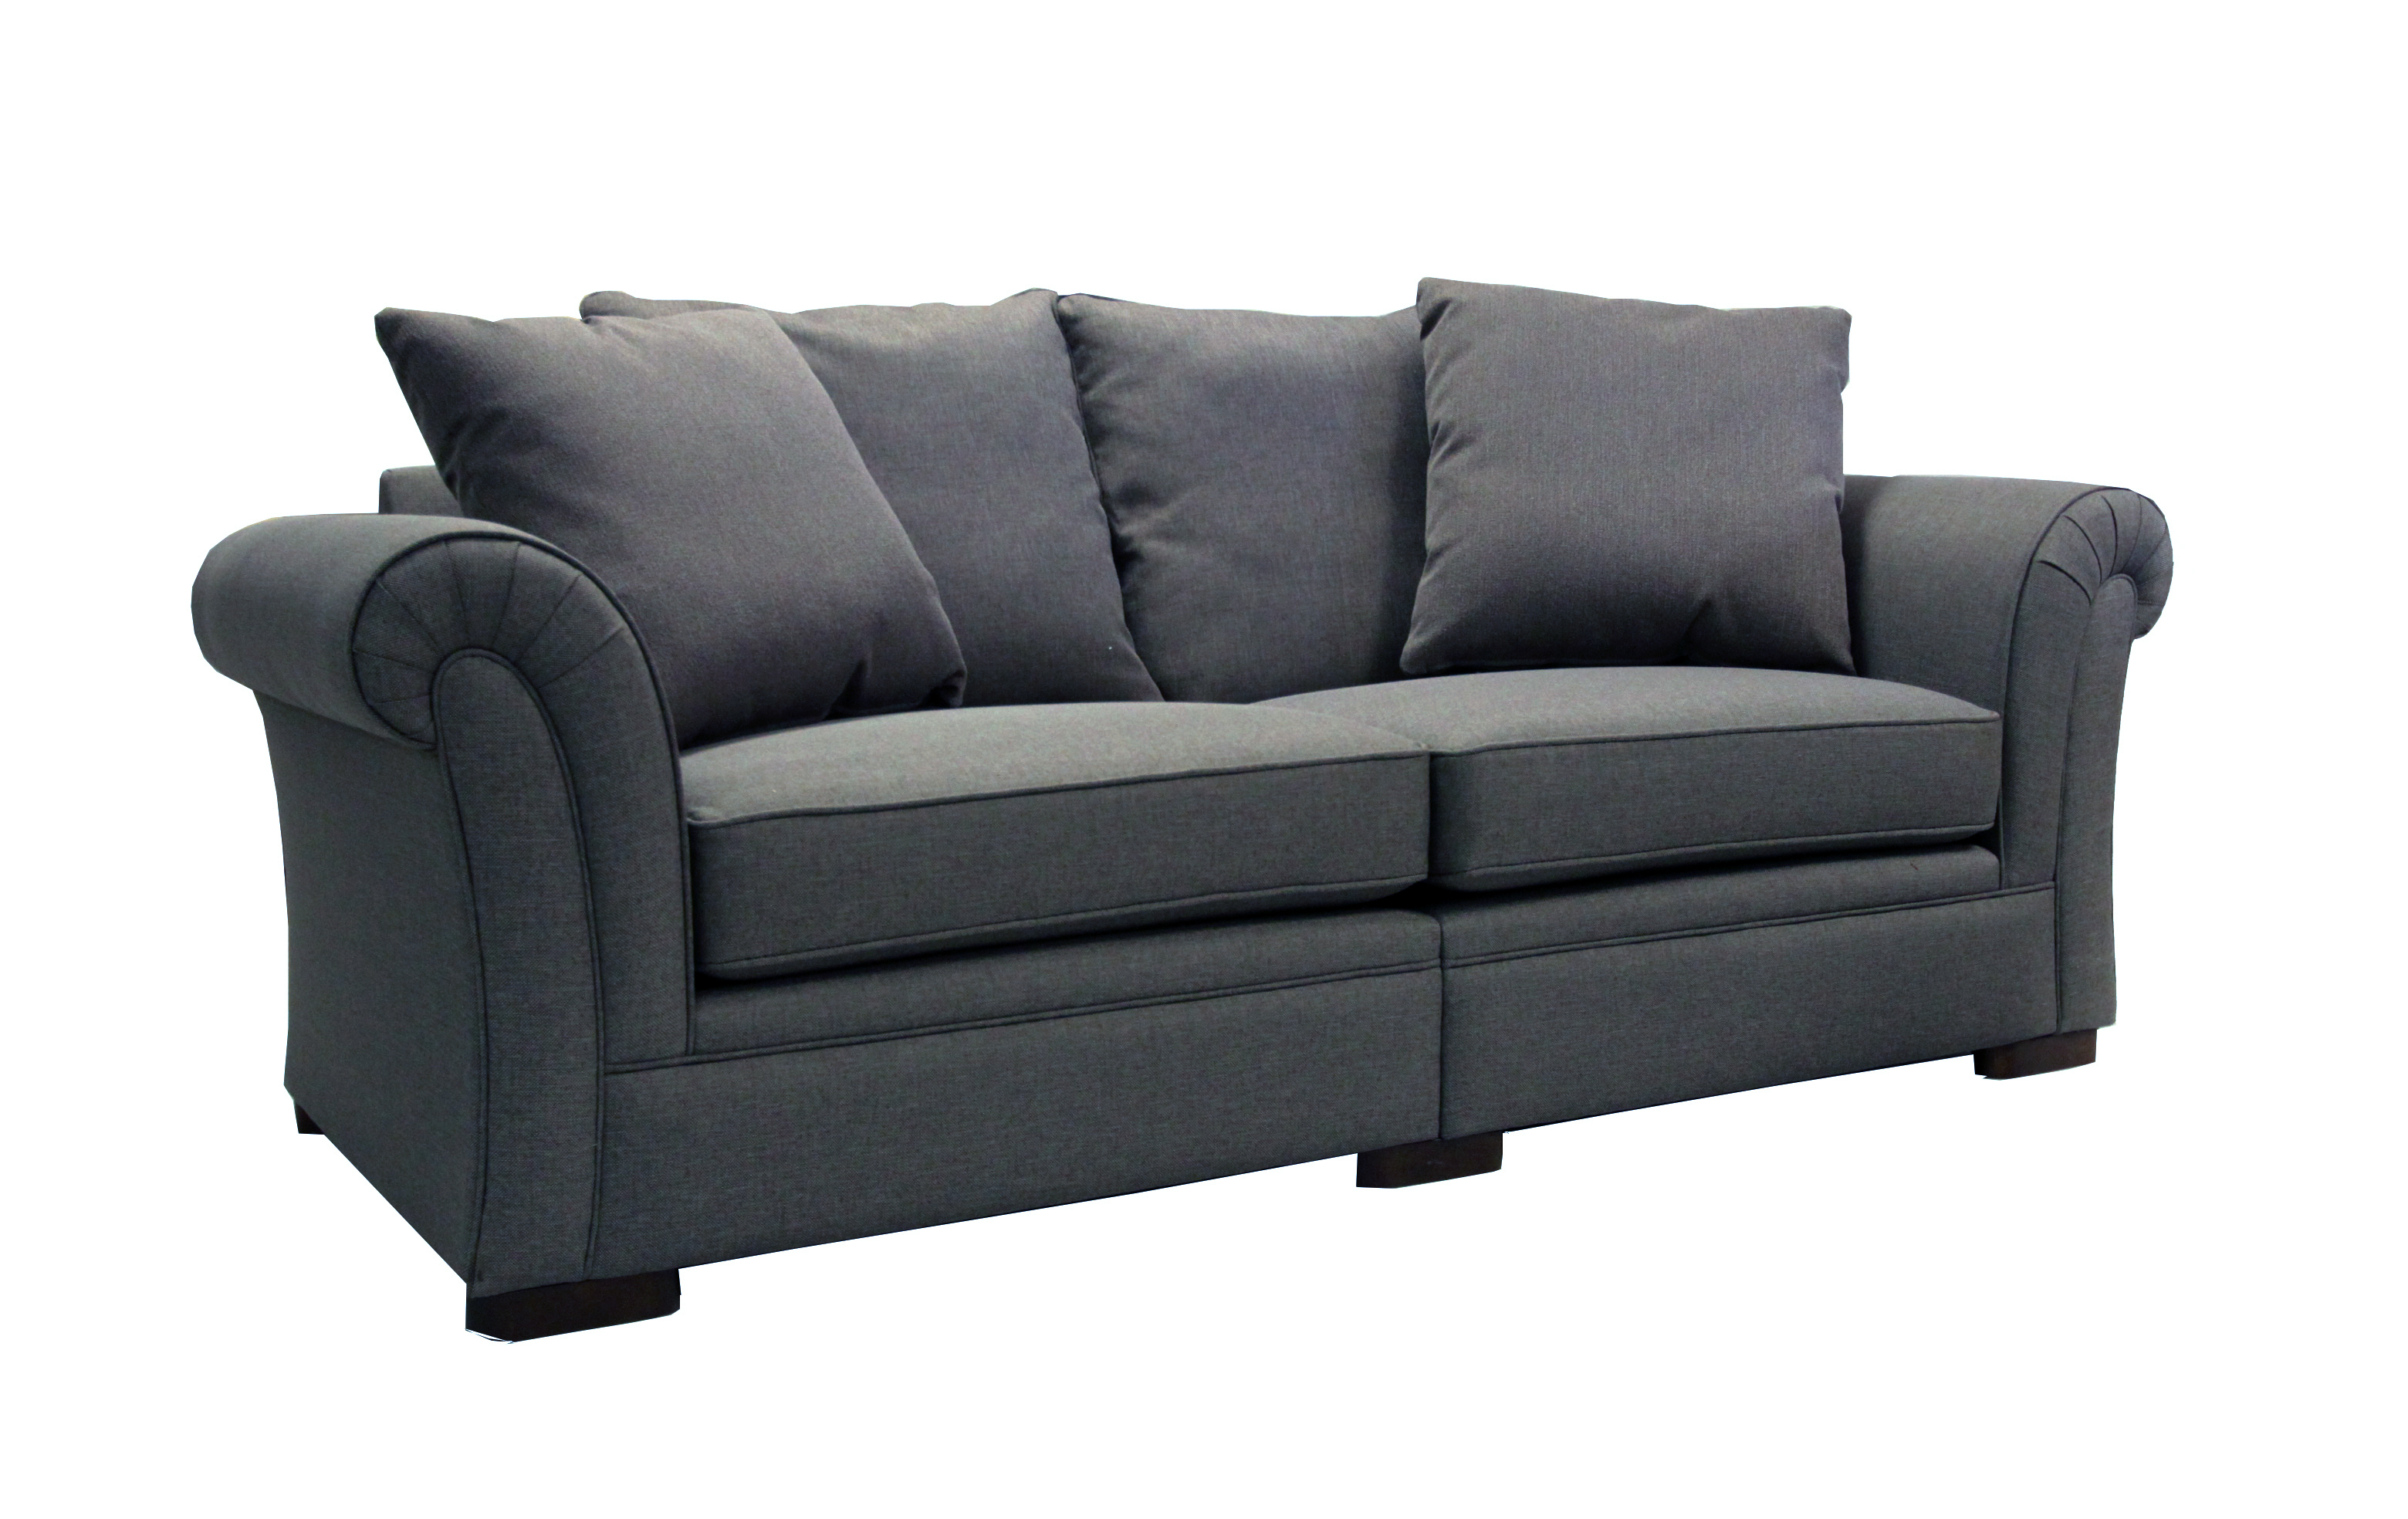 quality ex rental sofas for sale in surrey roomservice by cort. Black Bedroom Furniture Sets. Home Design Ideas